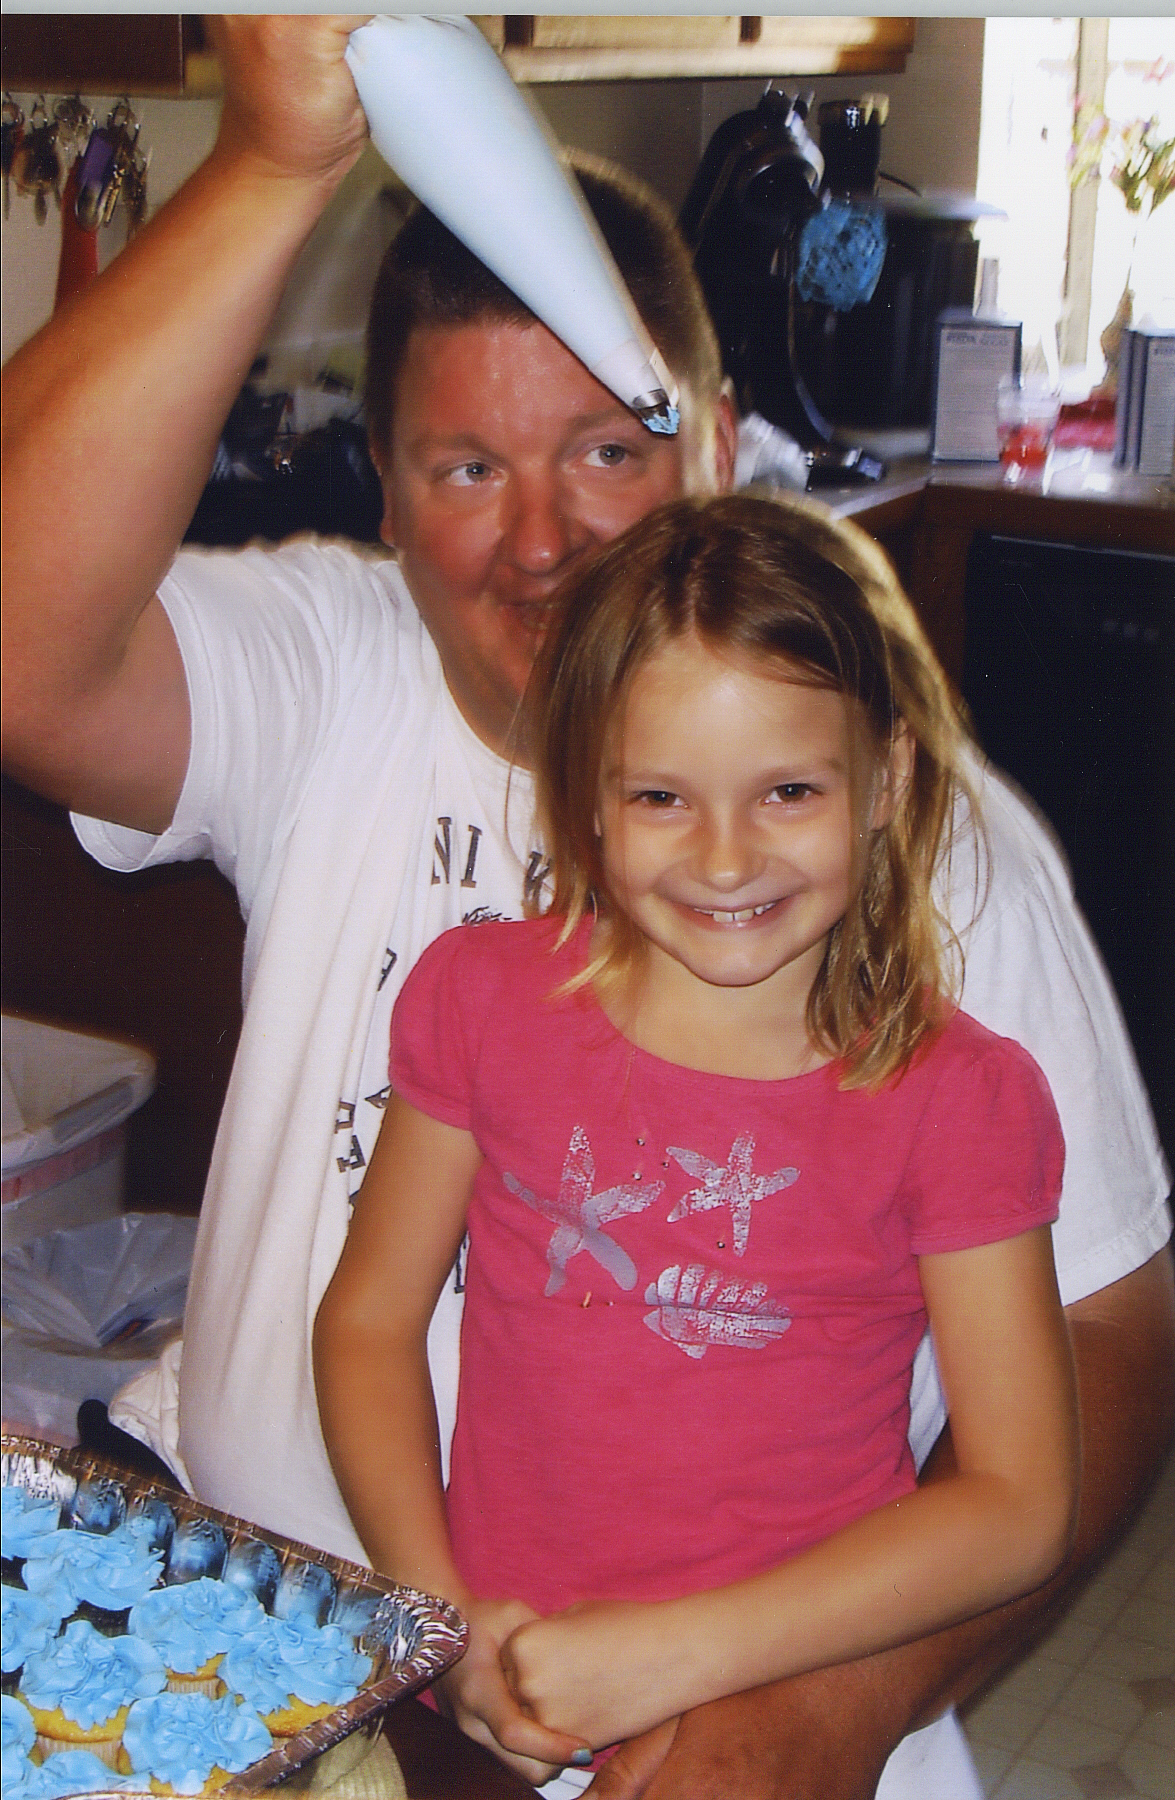 Makenna and her dad, Toby